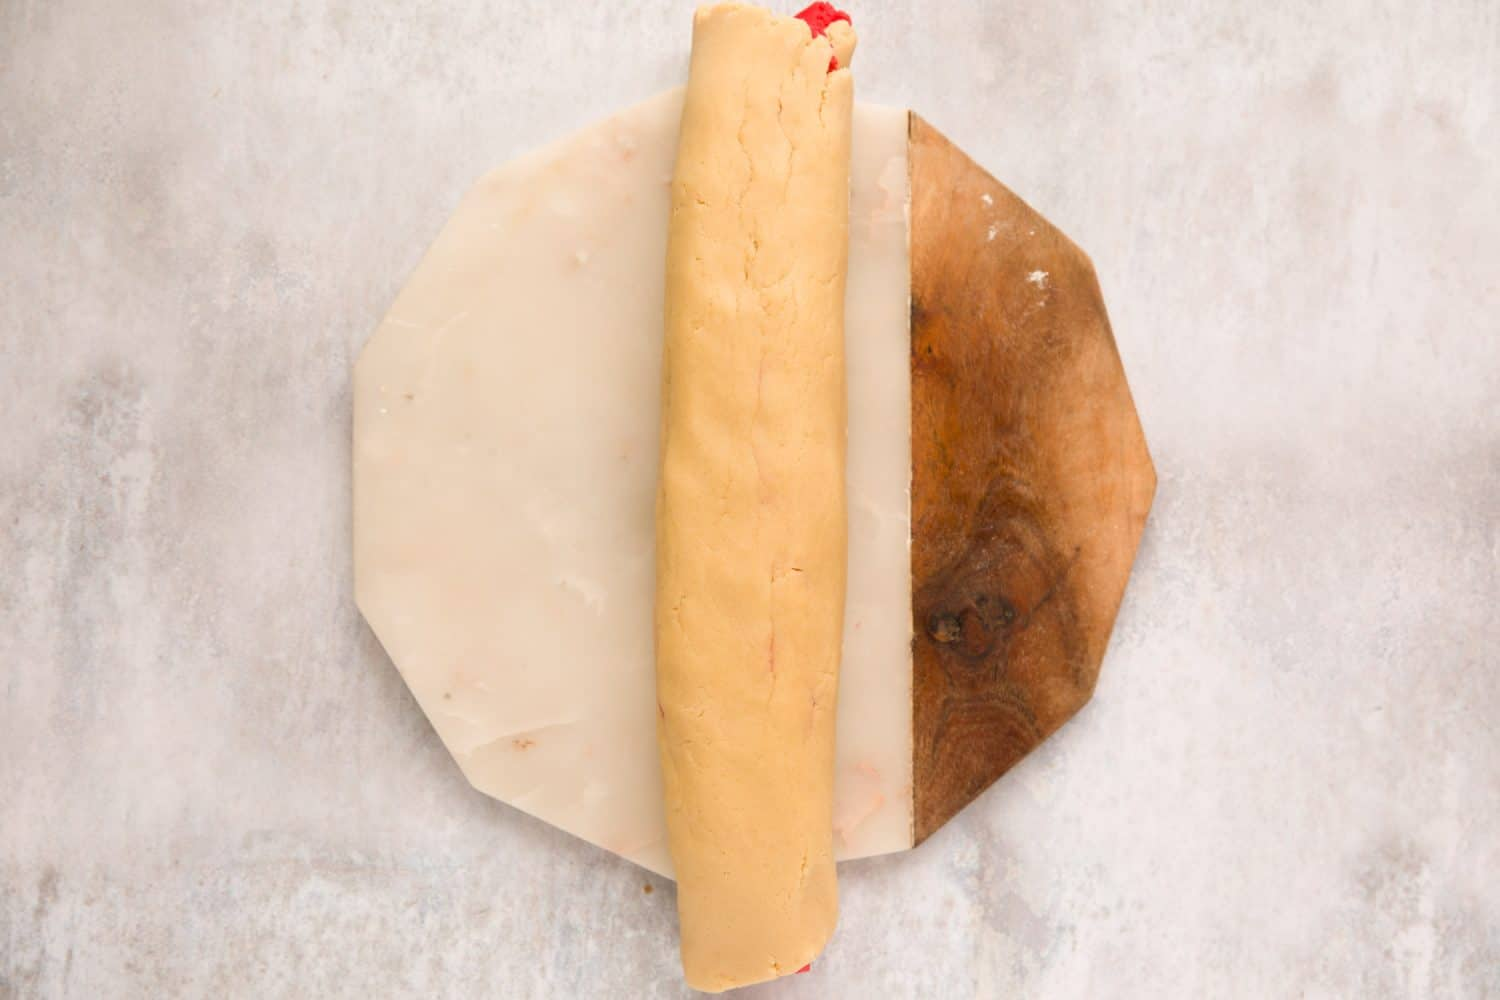 Biscuit dough that has been rolled into a sausage shape.